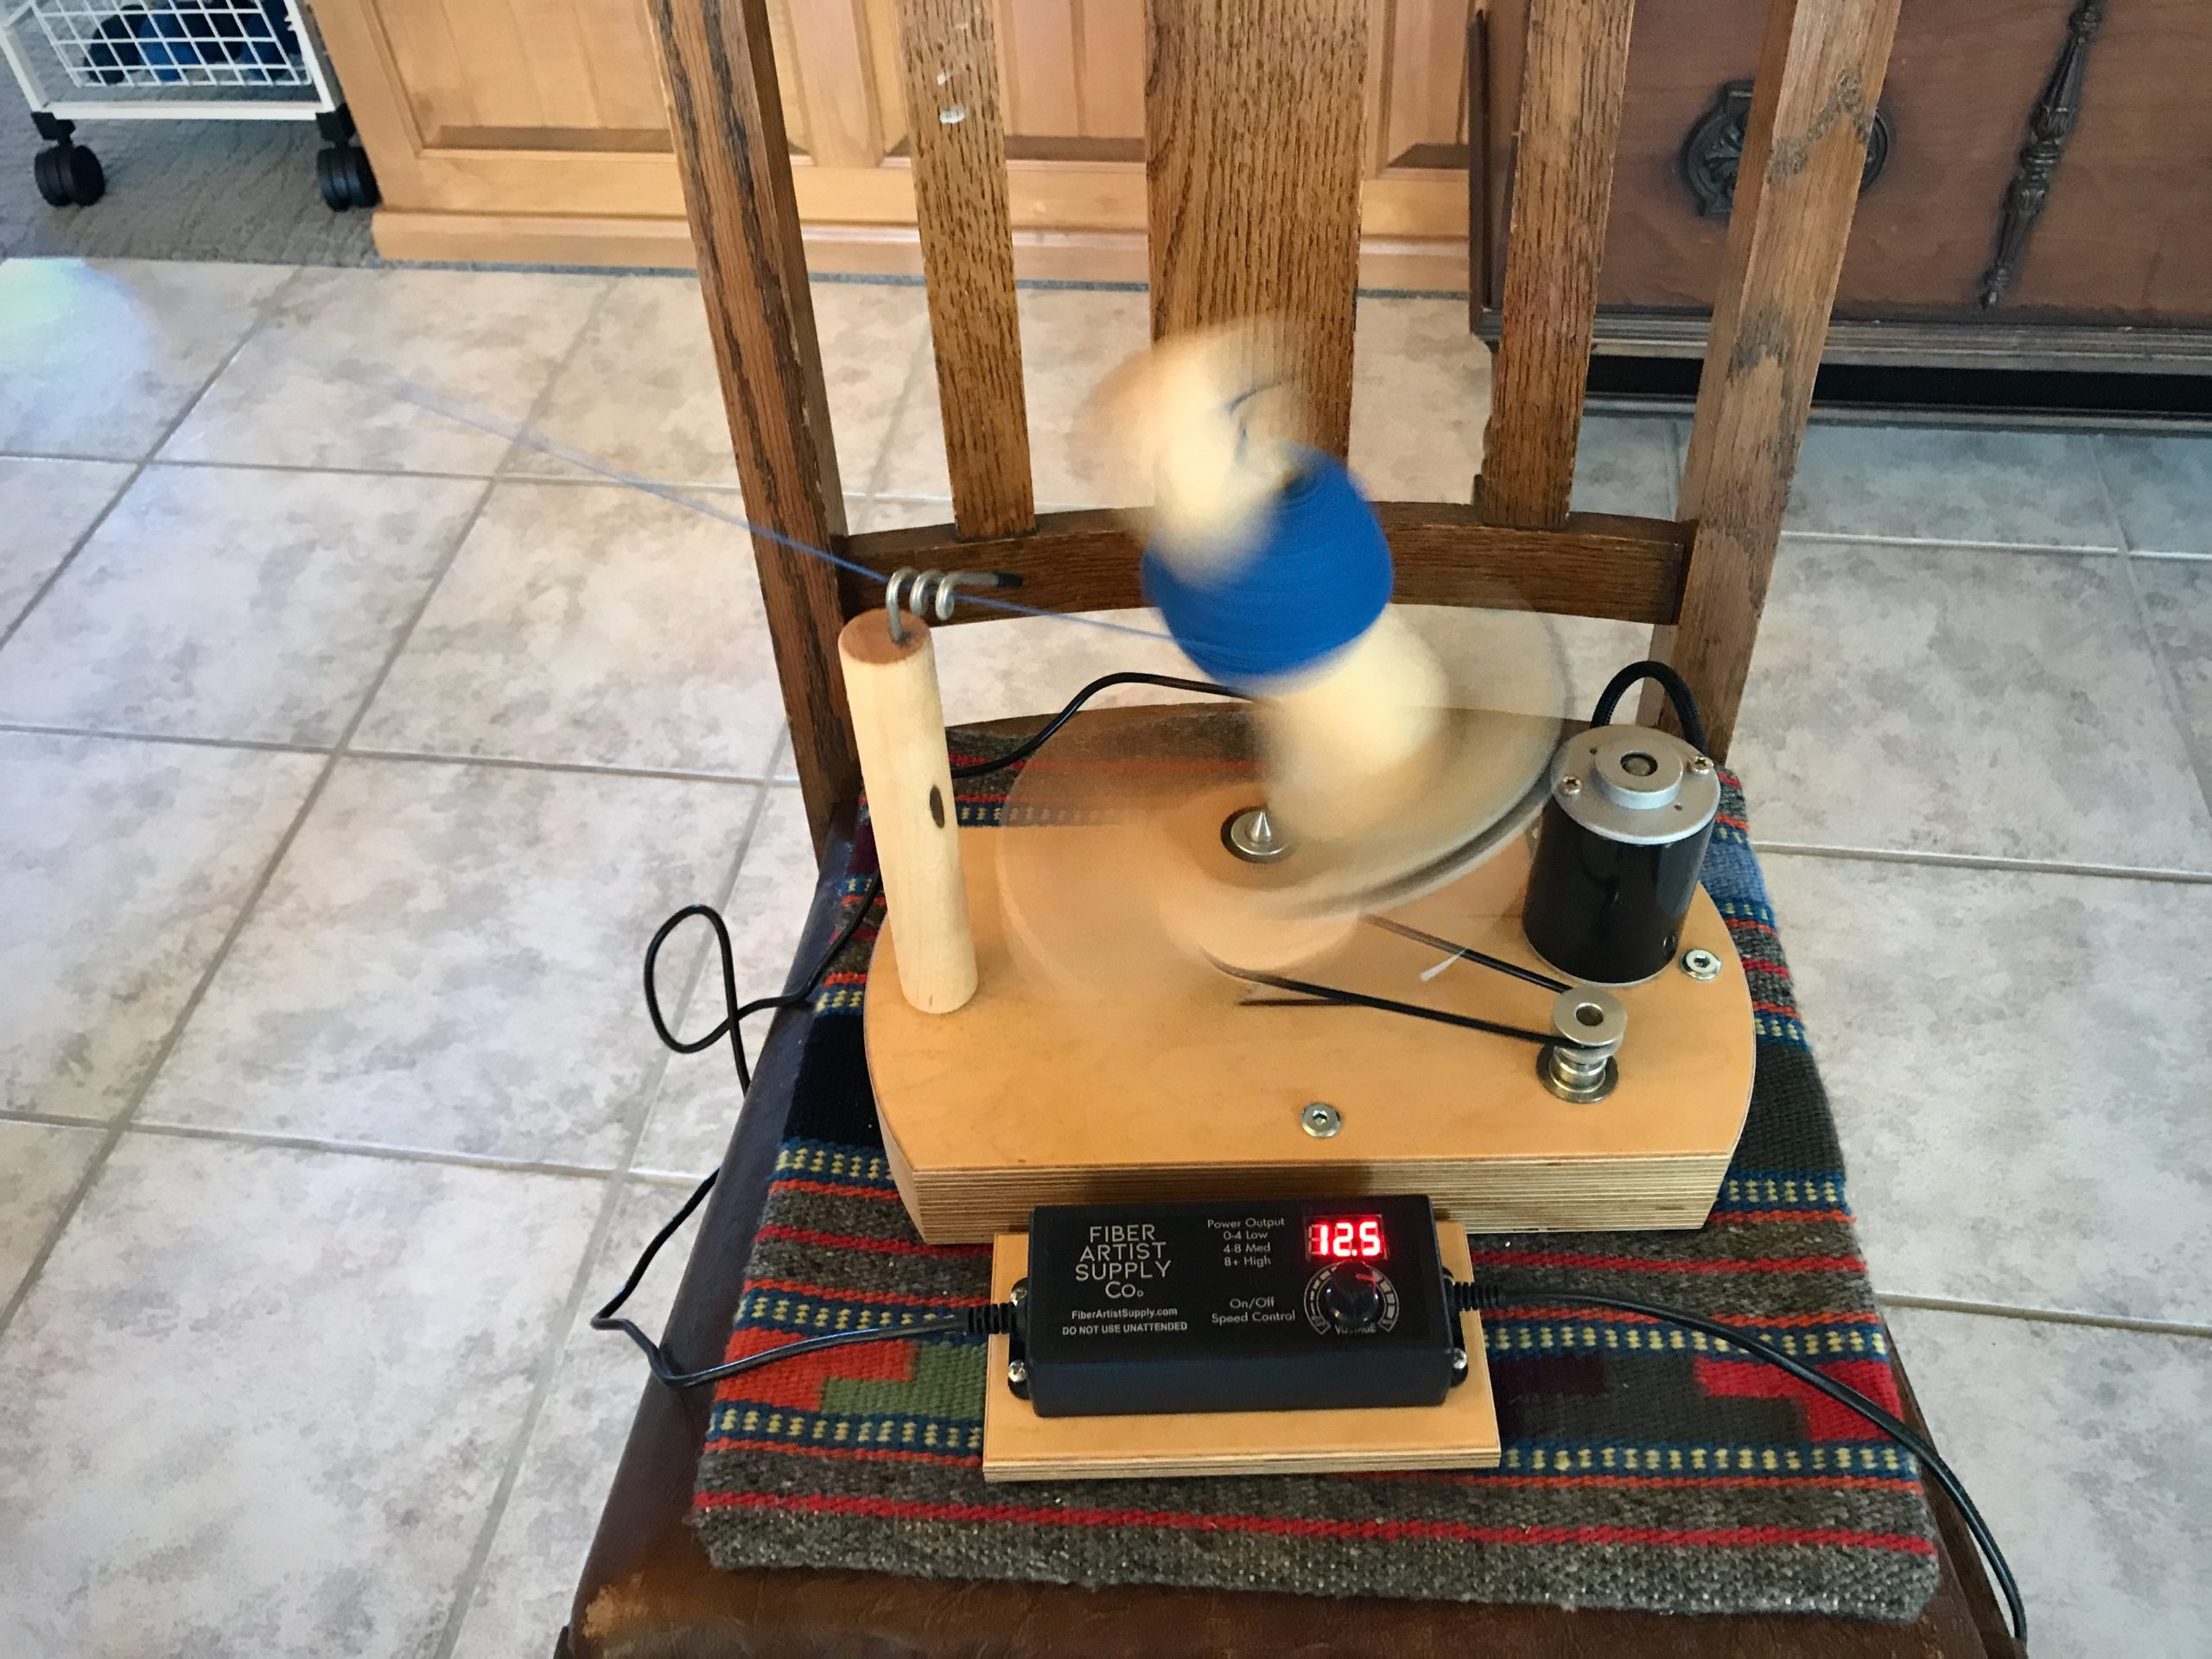 Electric ball winder. Time-saver and arm-saver!